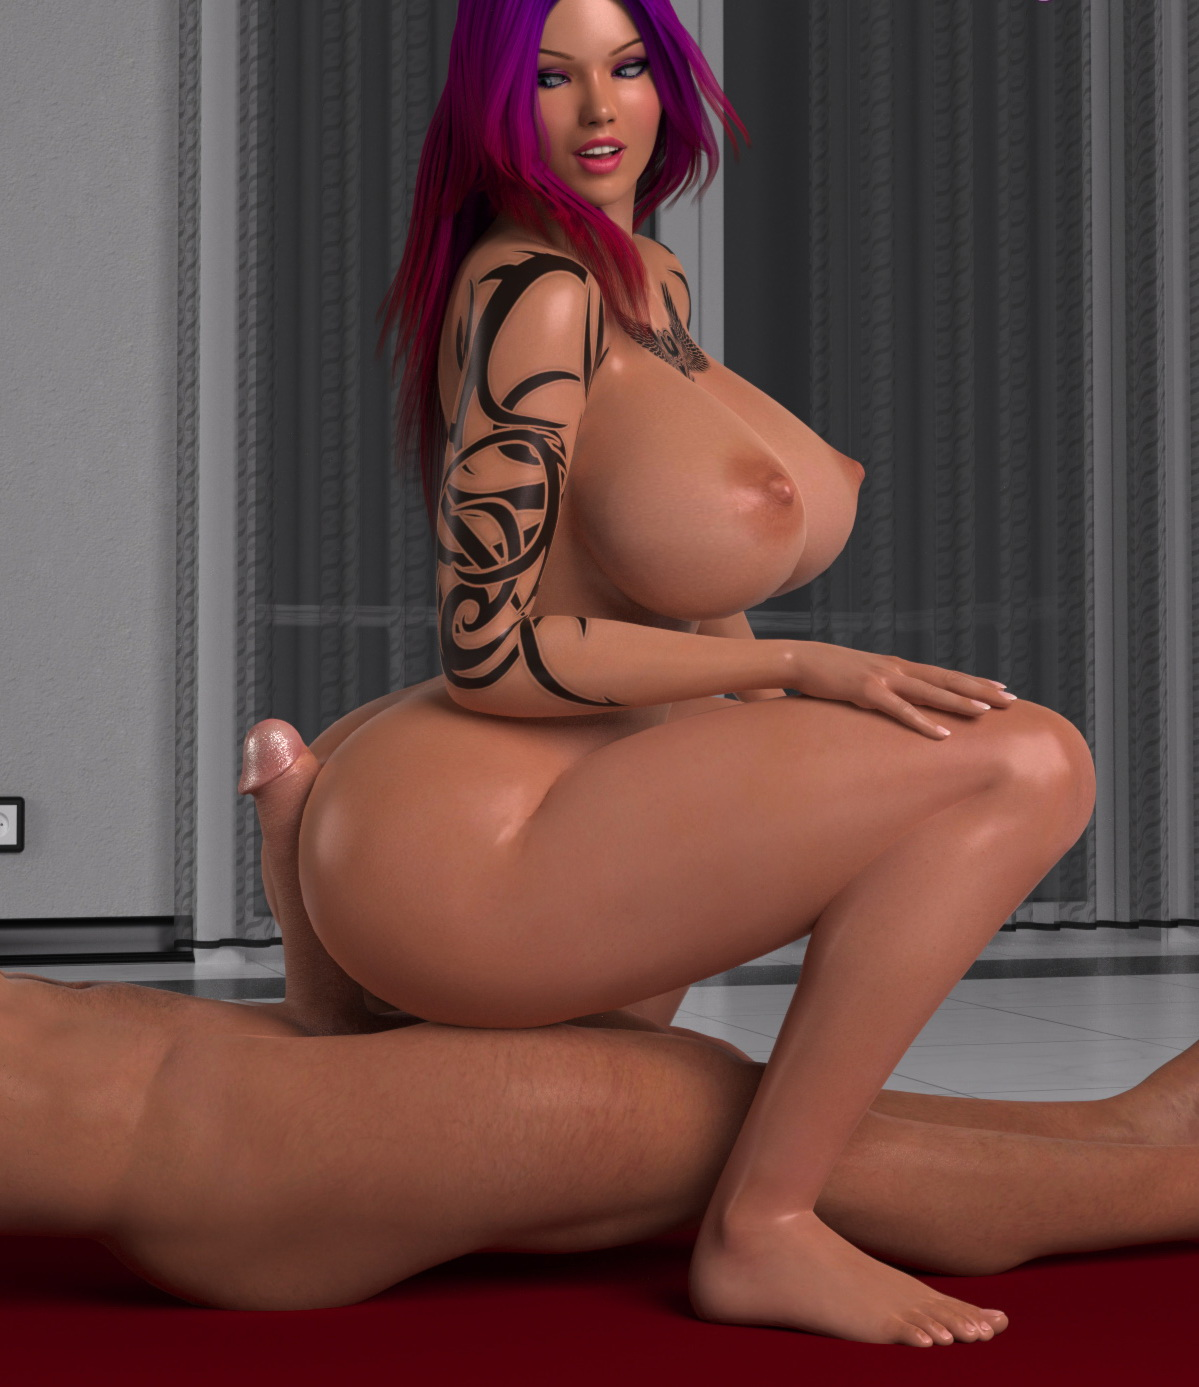 3d porntoon sex video